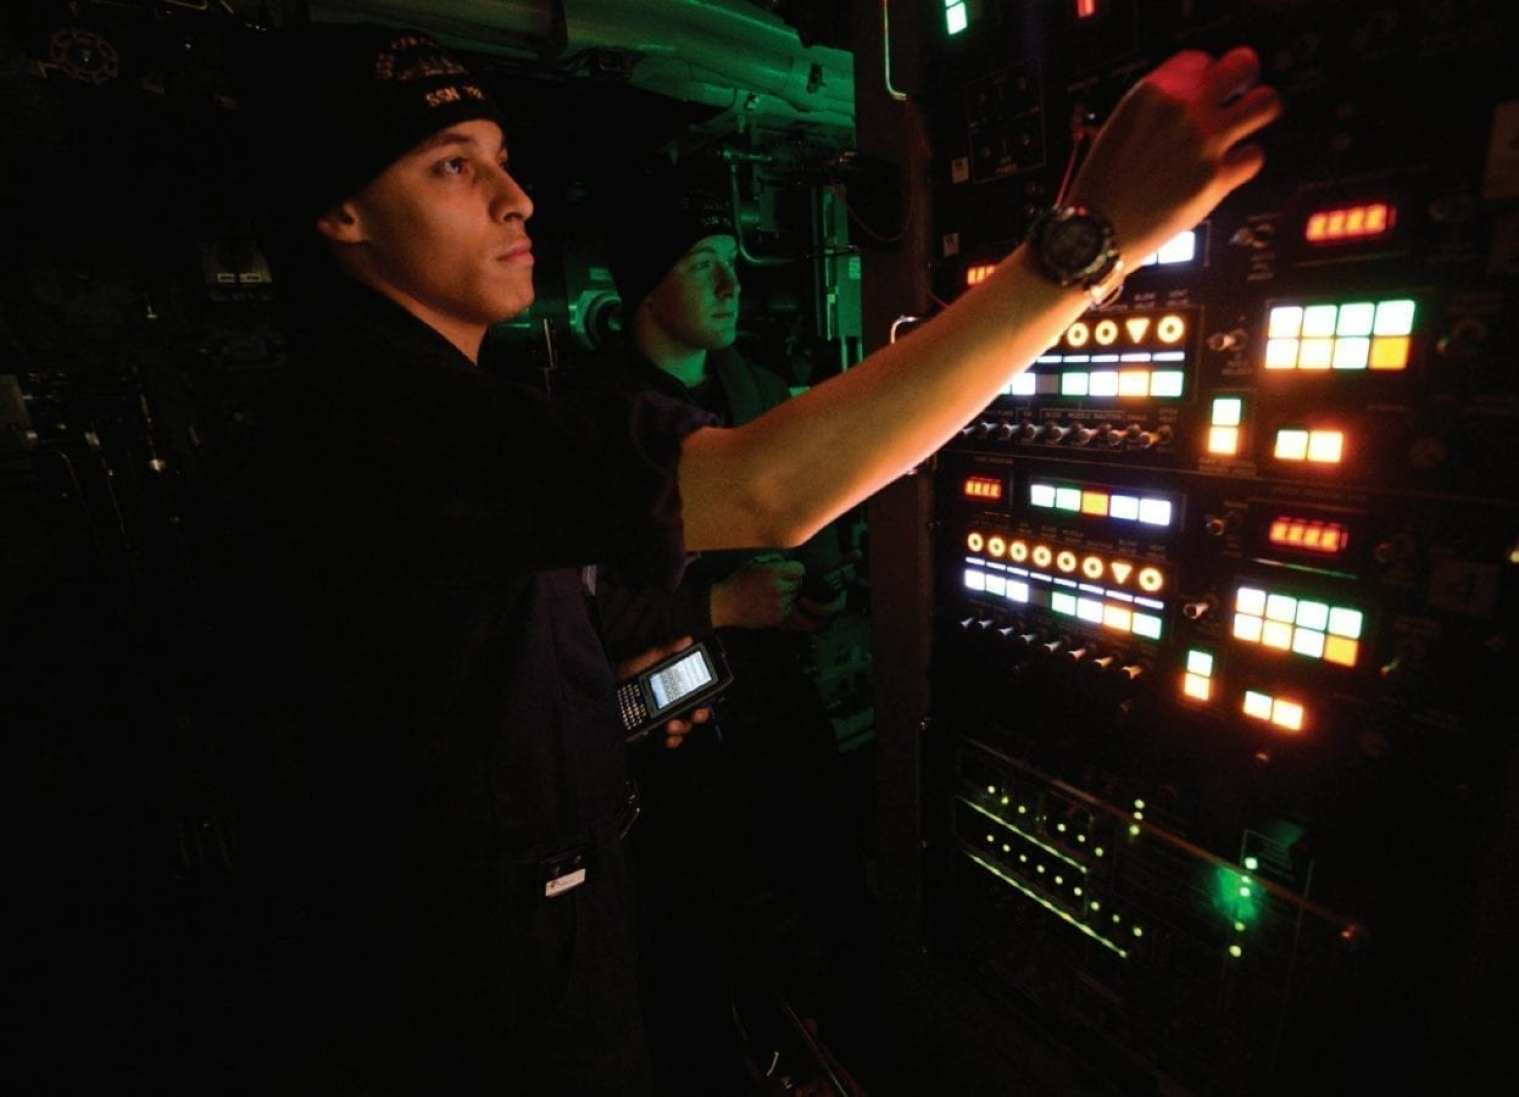 Machinist Mate (Weapons) 3rd Class Dennis J. Capello, front, conducts a system status check on a weapons launch console, while Information Systems Technician (Submarines) 3rd Class Austin J. Killough, back, conducts a systems safety check aboard USS Colorado (SSN 788) in 2018. Virginia-class submarines have grown in capability even as costs have been reduced with each block of builds.